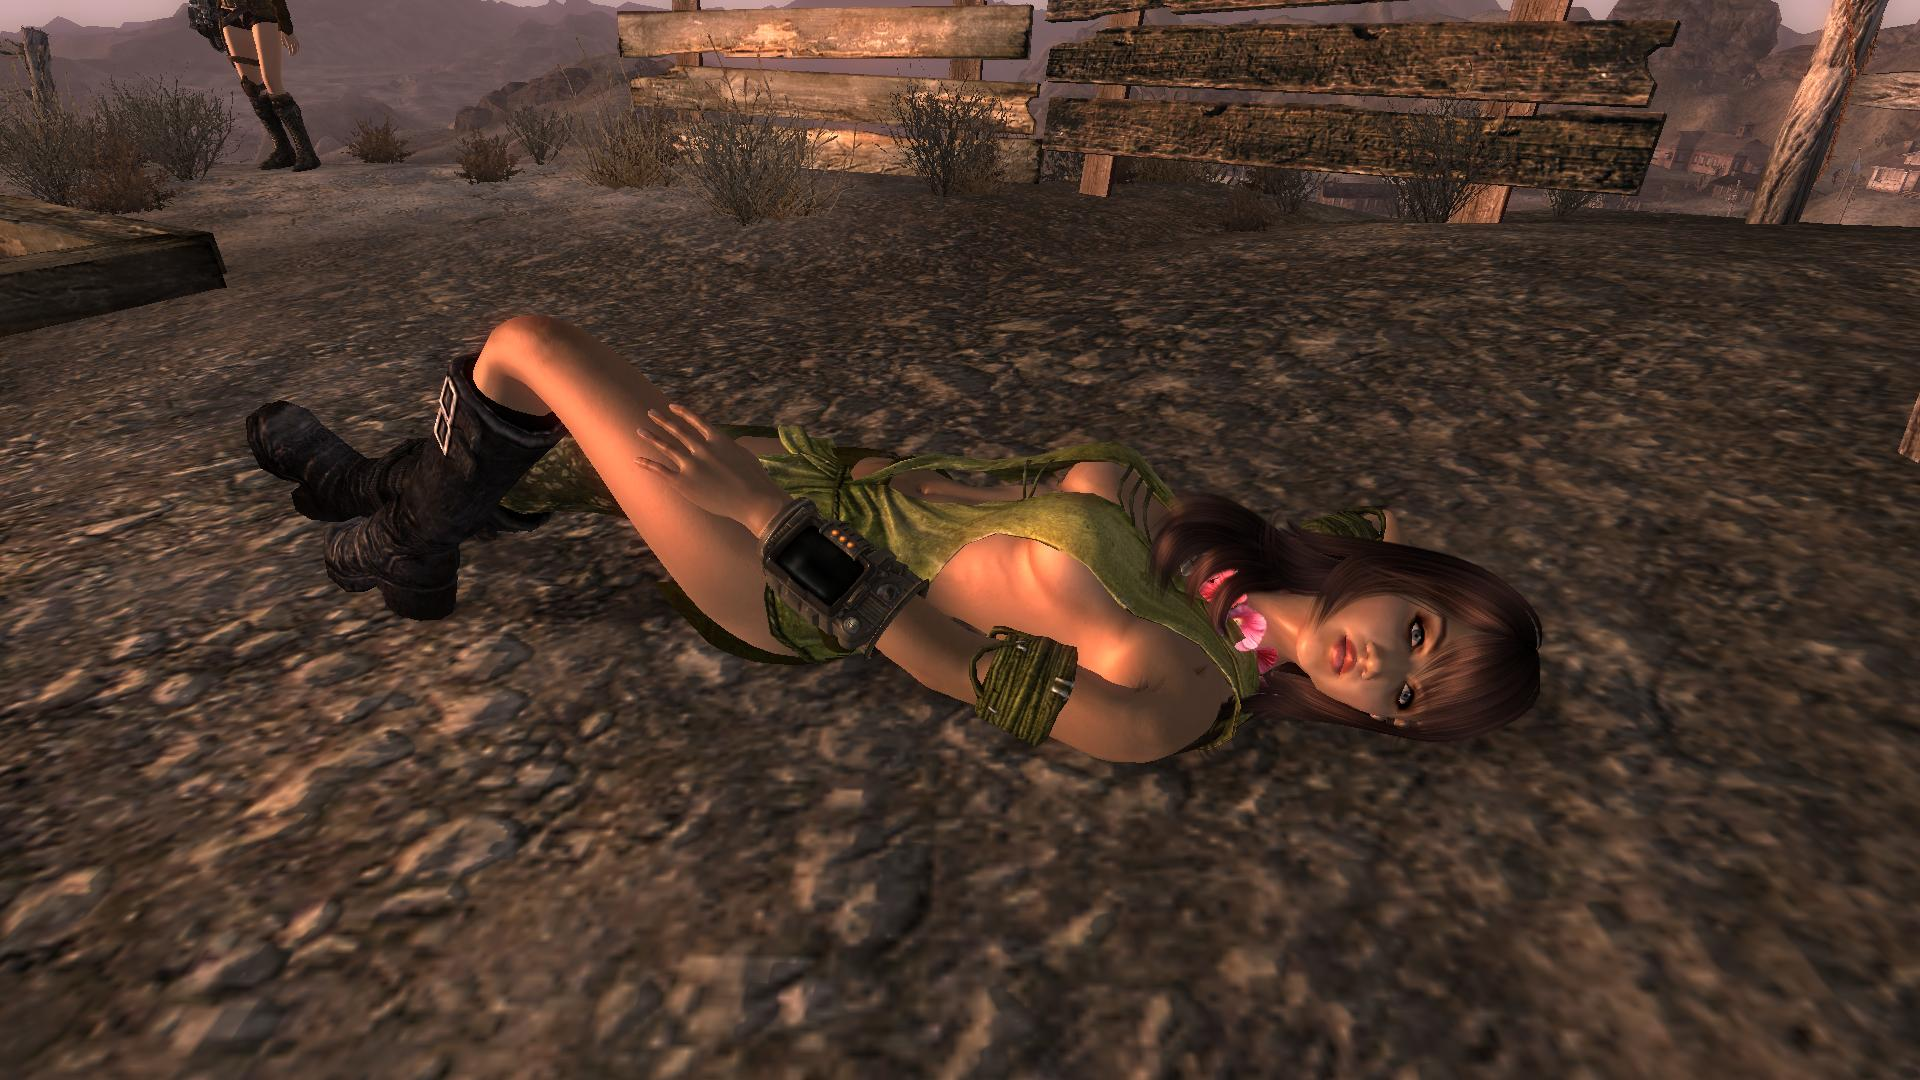 Free fallout new vegas porn naked pic